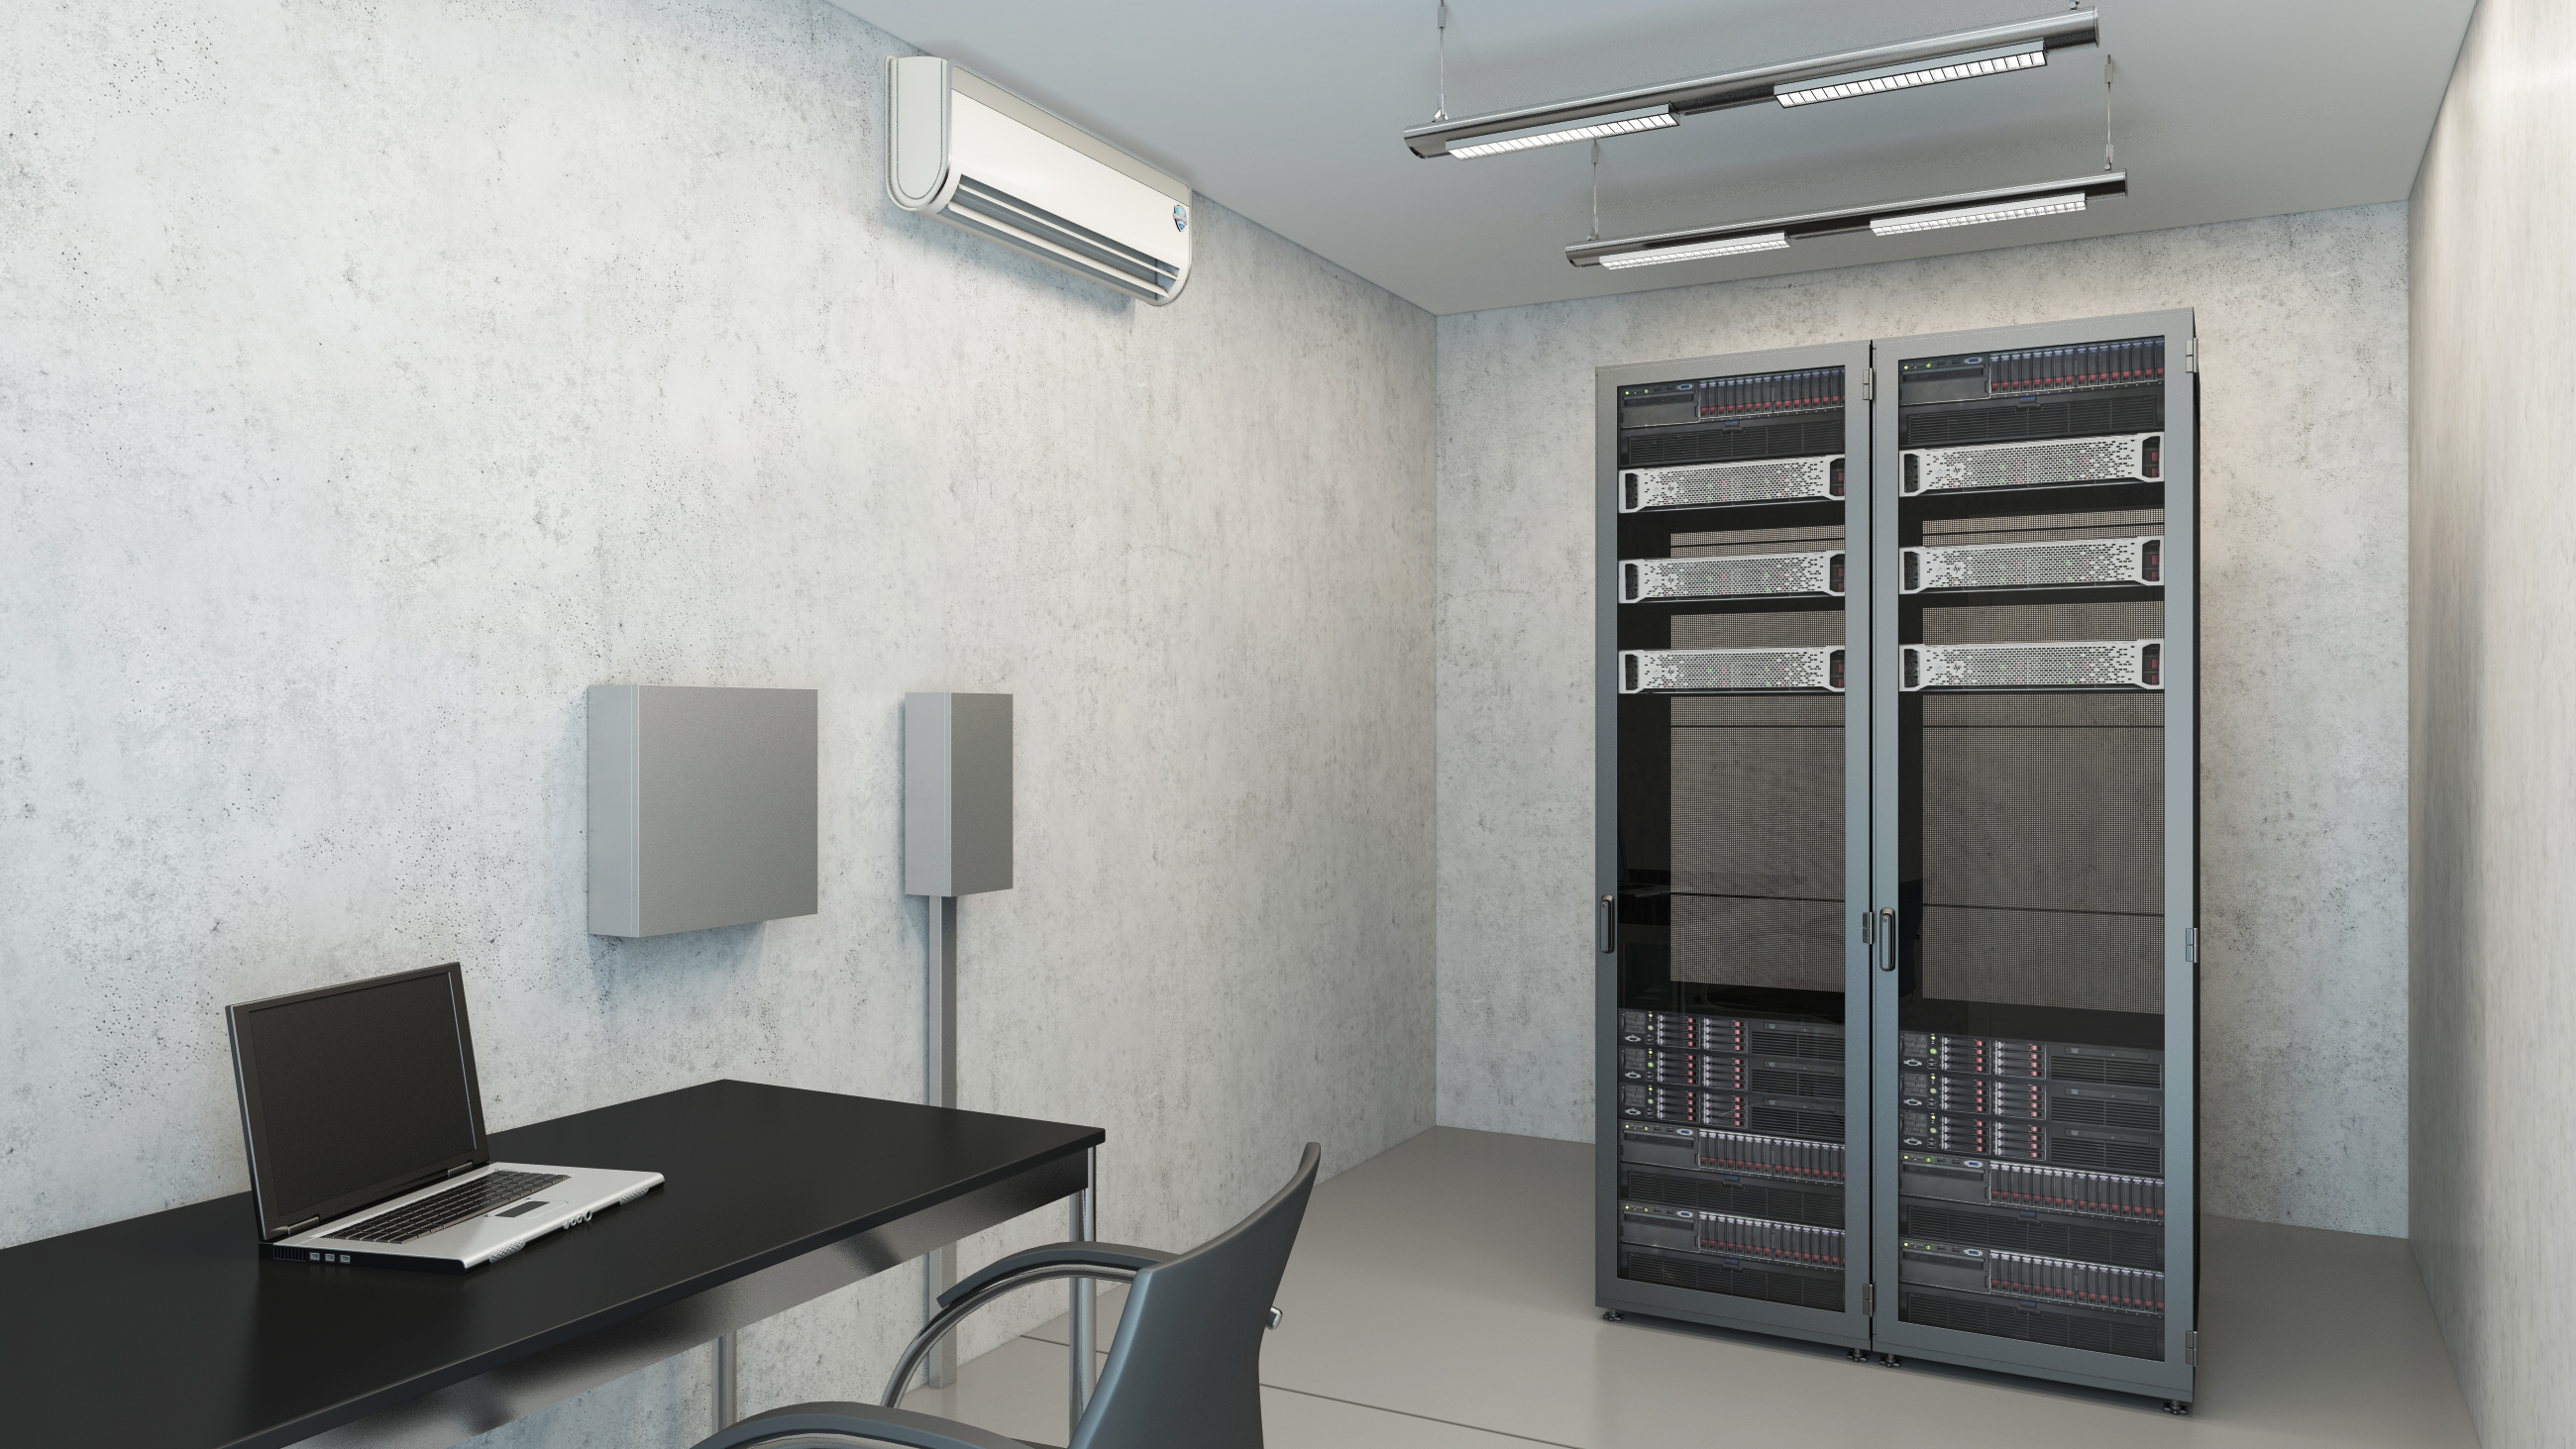 Server Room Air Conditioning Expert Aircon Installations